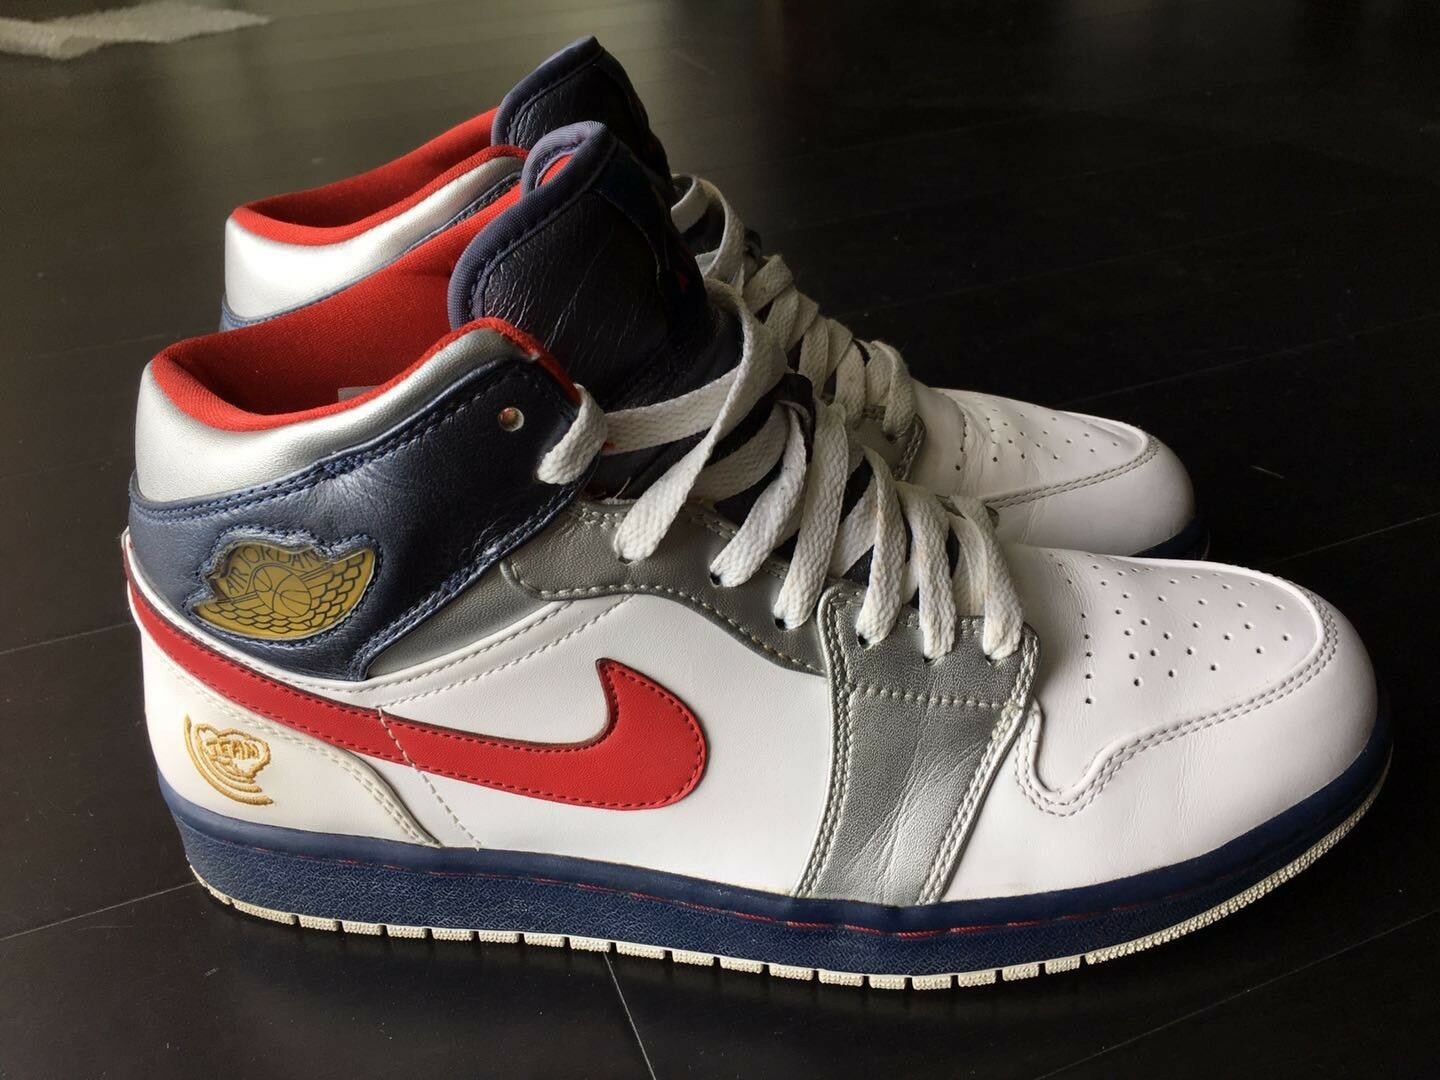 Nike Air Jordan I Retro 1 OLYMPIC White Red Blue Gold 136085-161 Sz 10 44 Rare The latest discount shoes for men and women